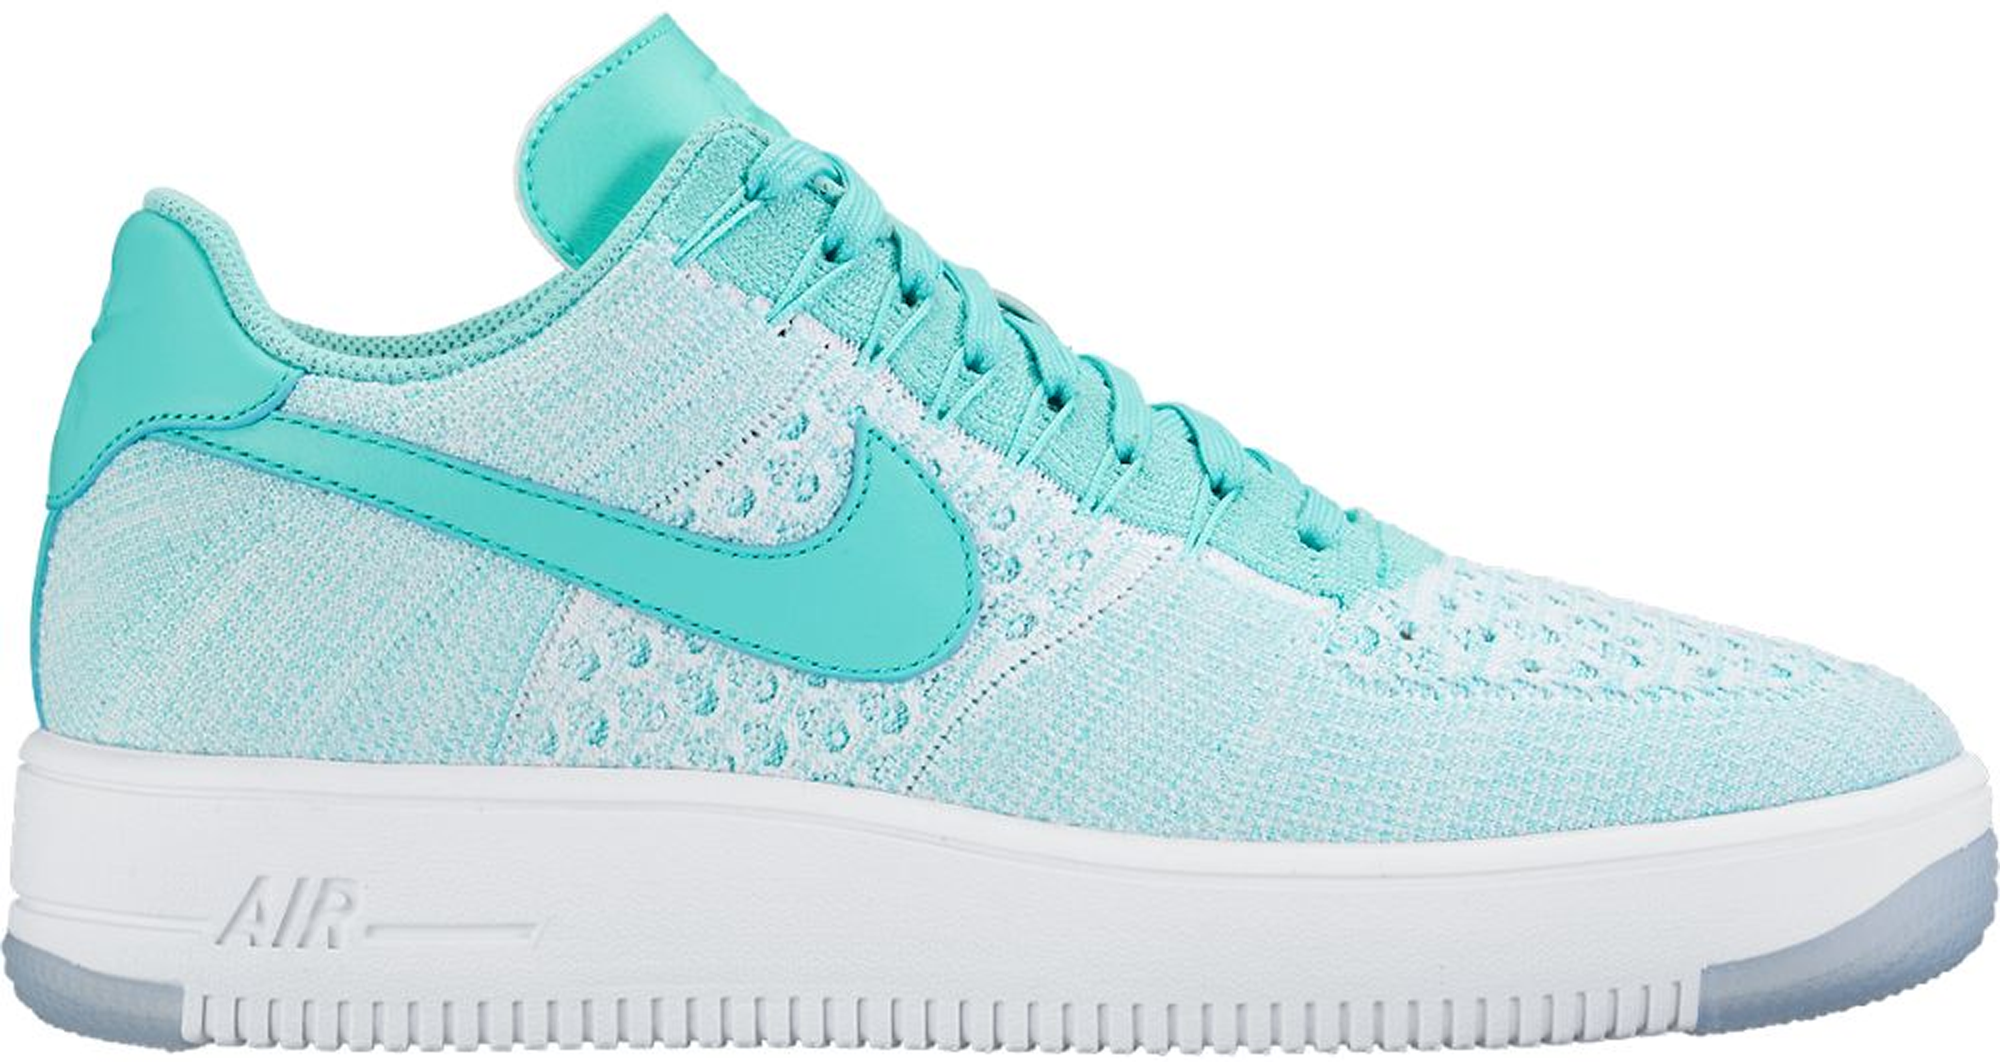 Air Force 1 Flyknit Low Hyper Turquoise (W) in Hyper TurquoiseHyper Turquoise